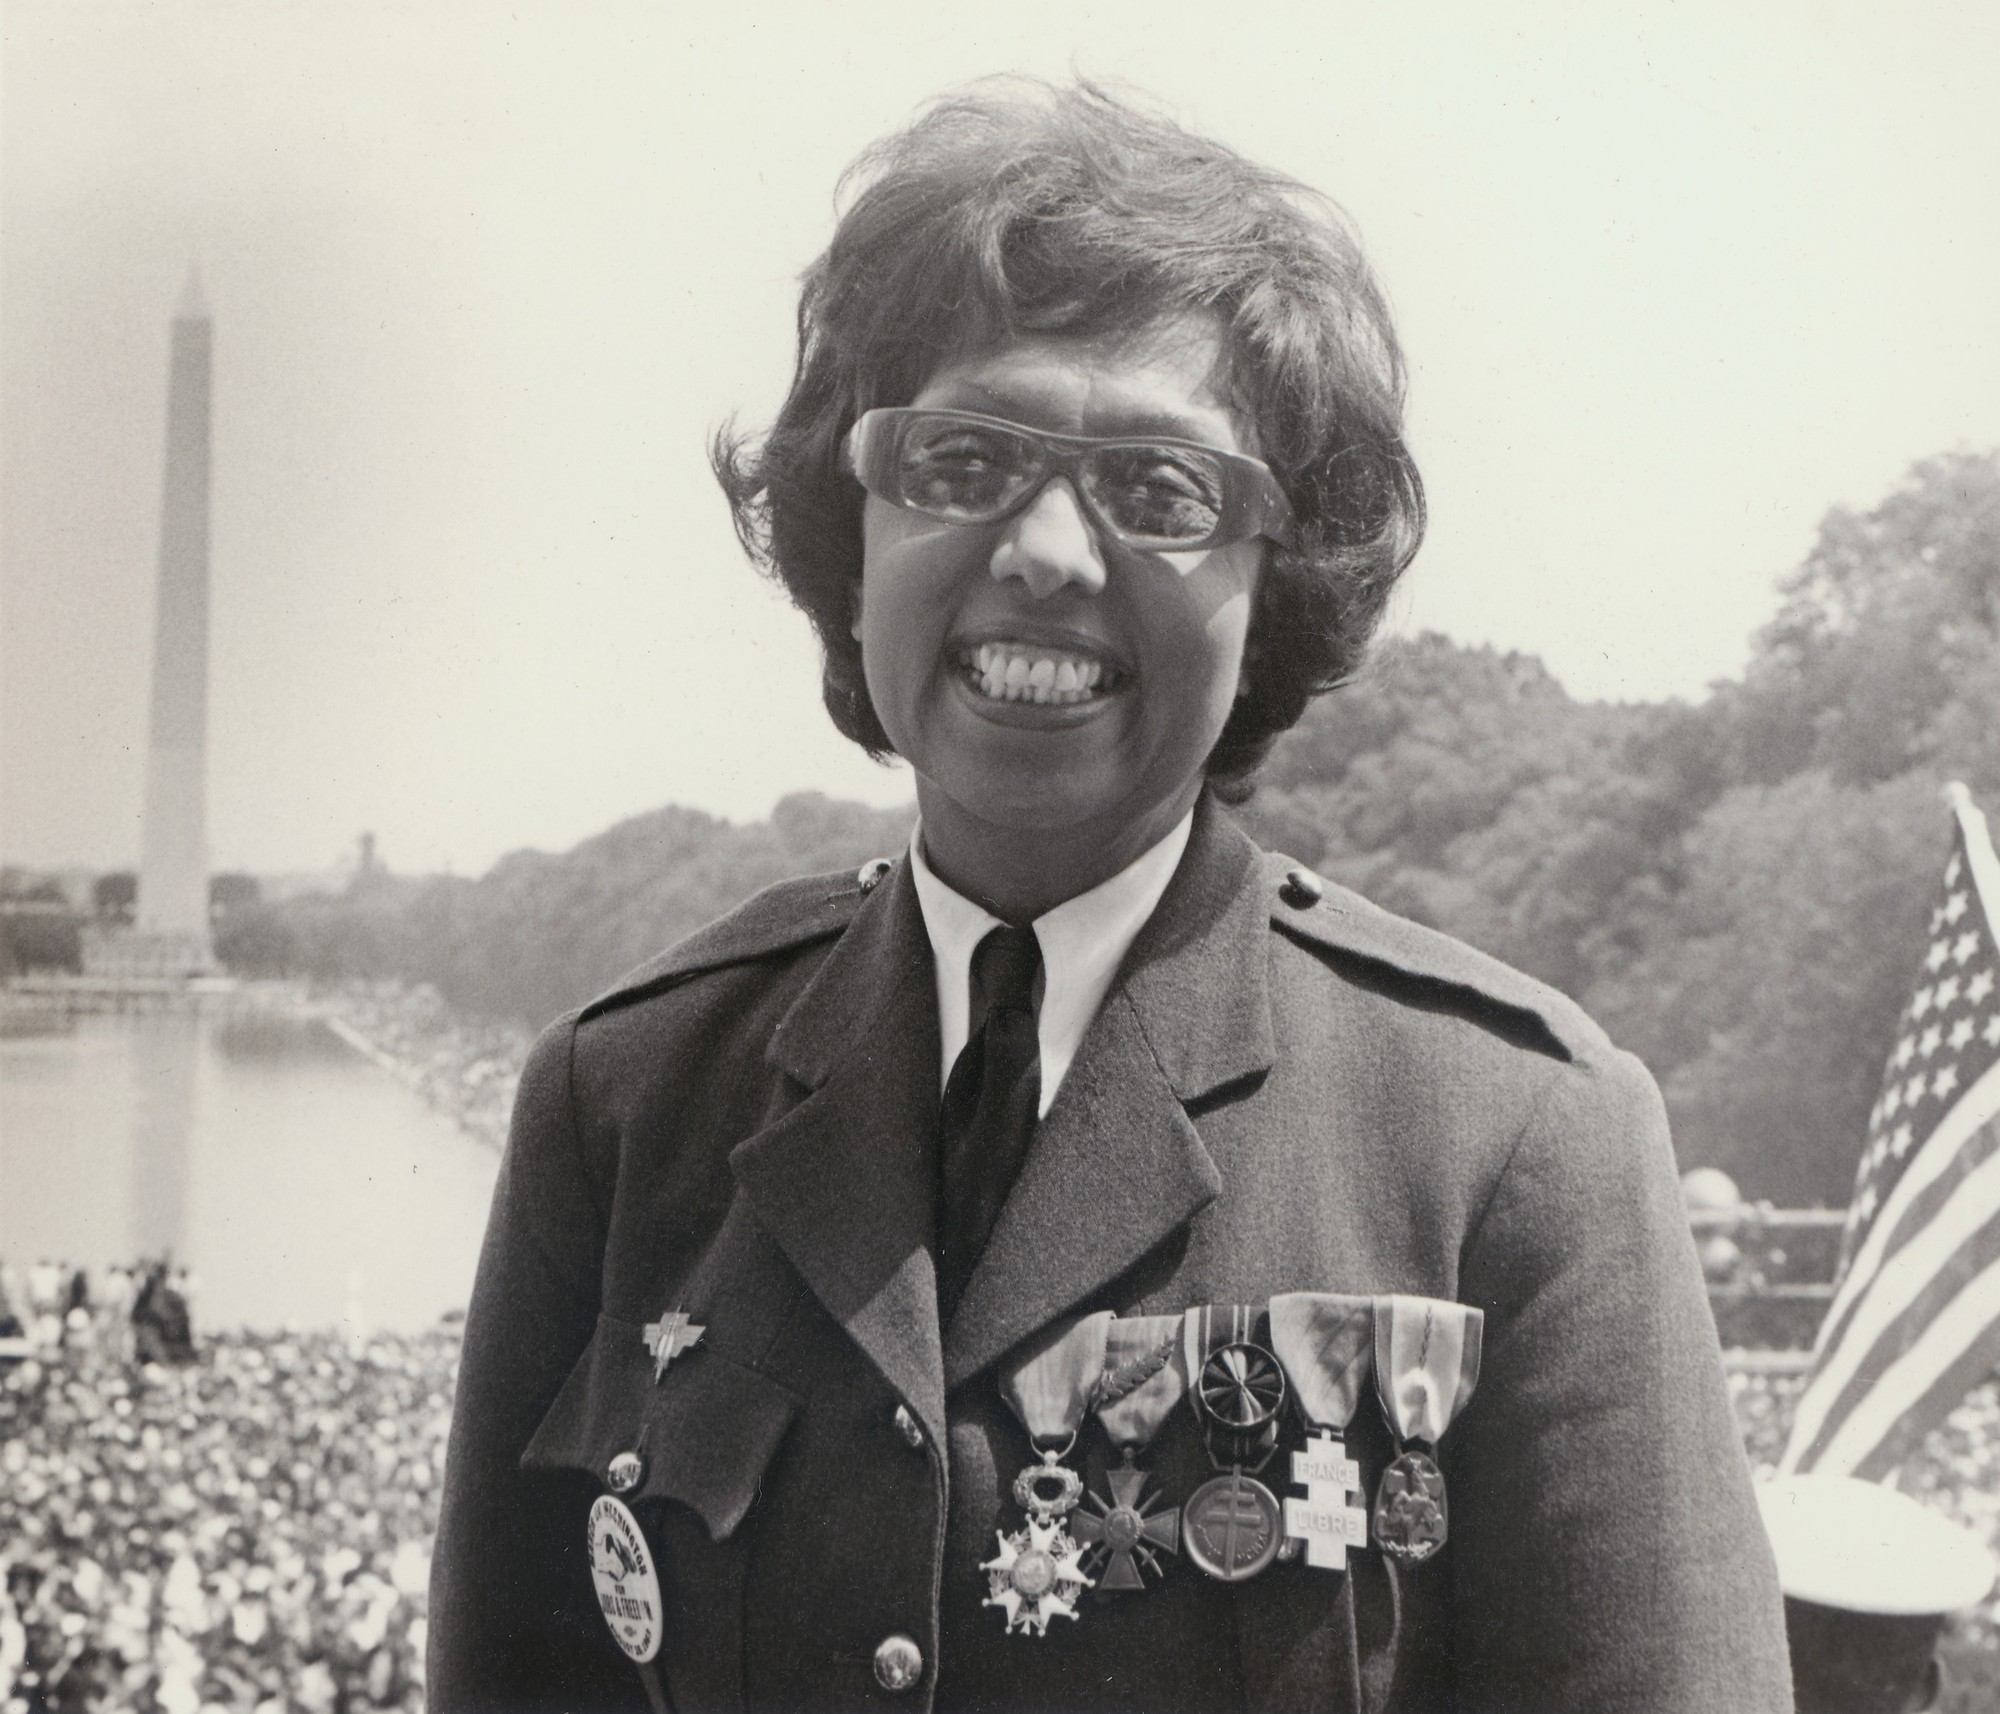 Josephine Baker wearing her medals of honour, post WWII.